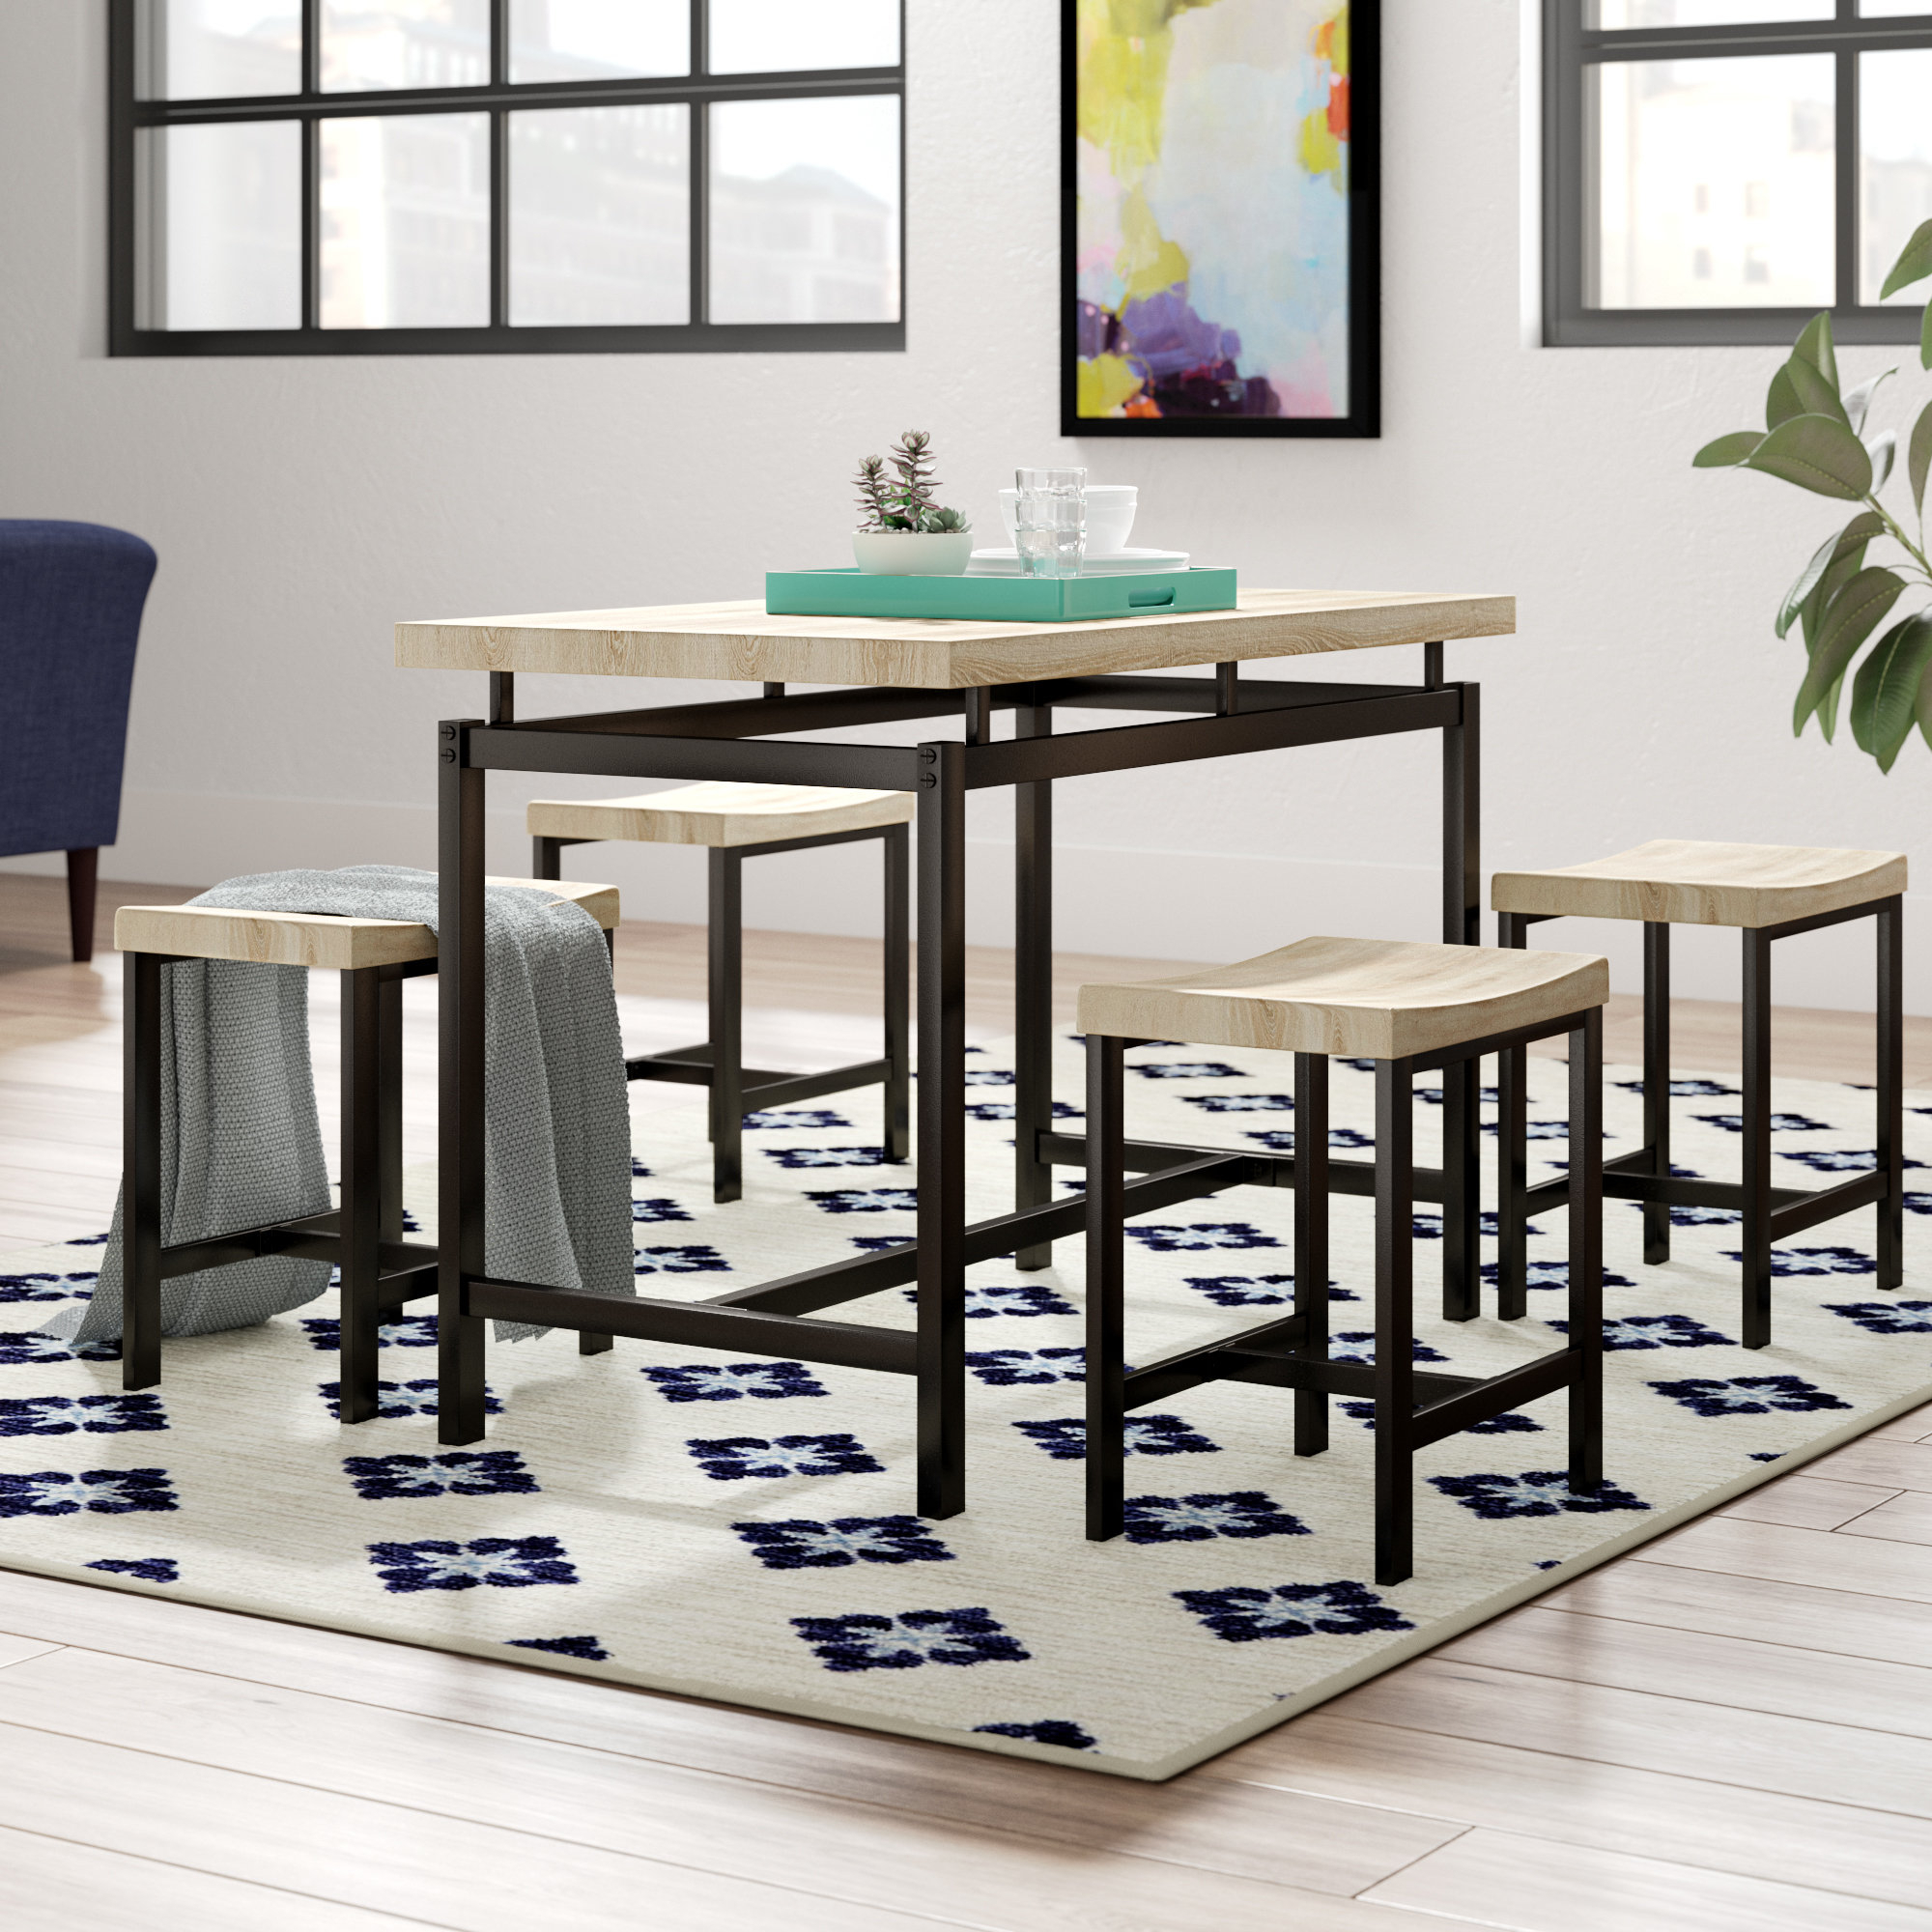 Bryson 5 Piece Dining Set With Regard To 2018 Frida 3 Piece Dining Table Sets (View 16 of 20)